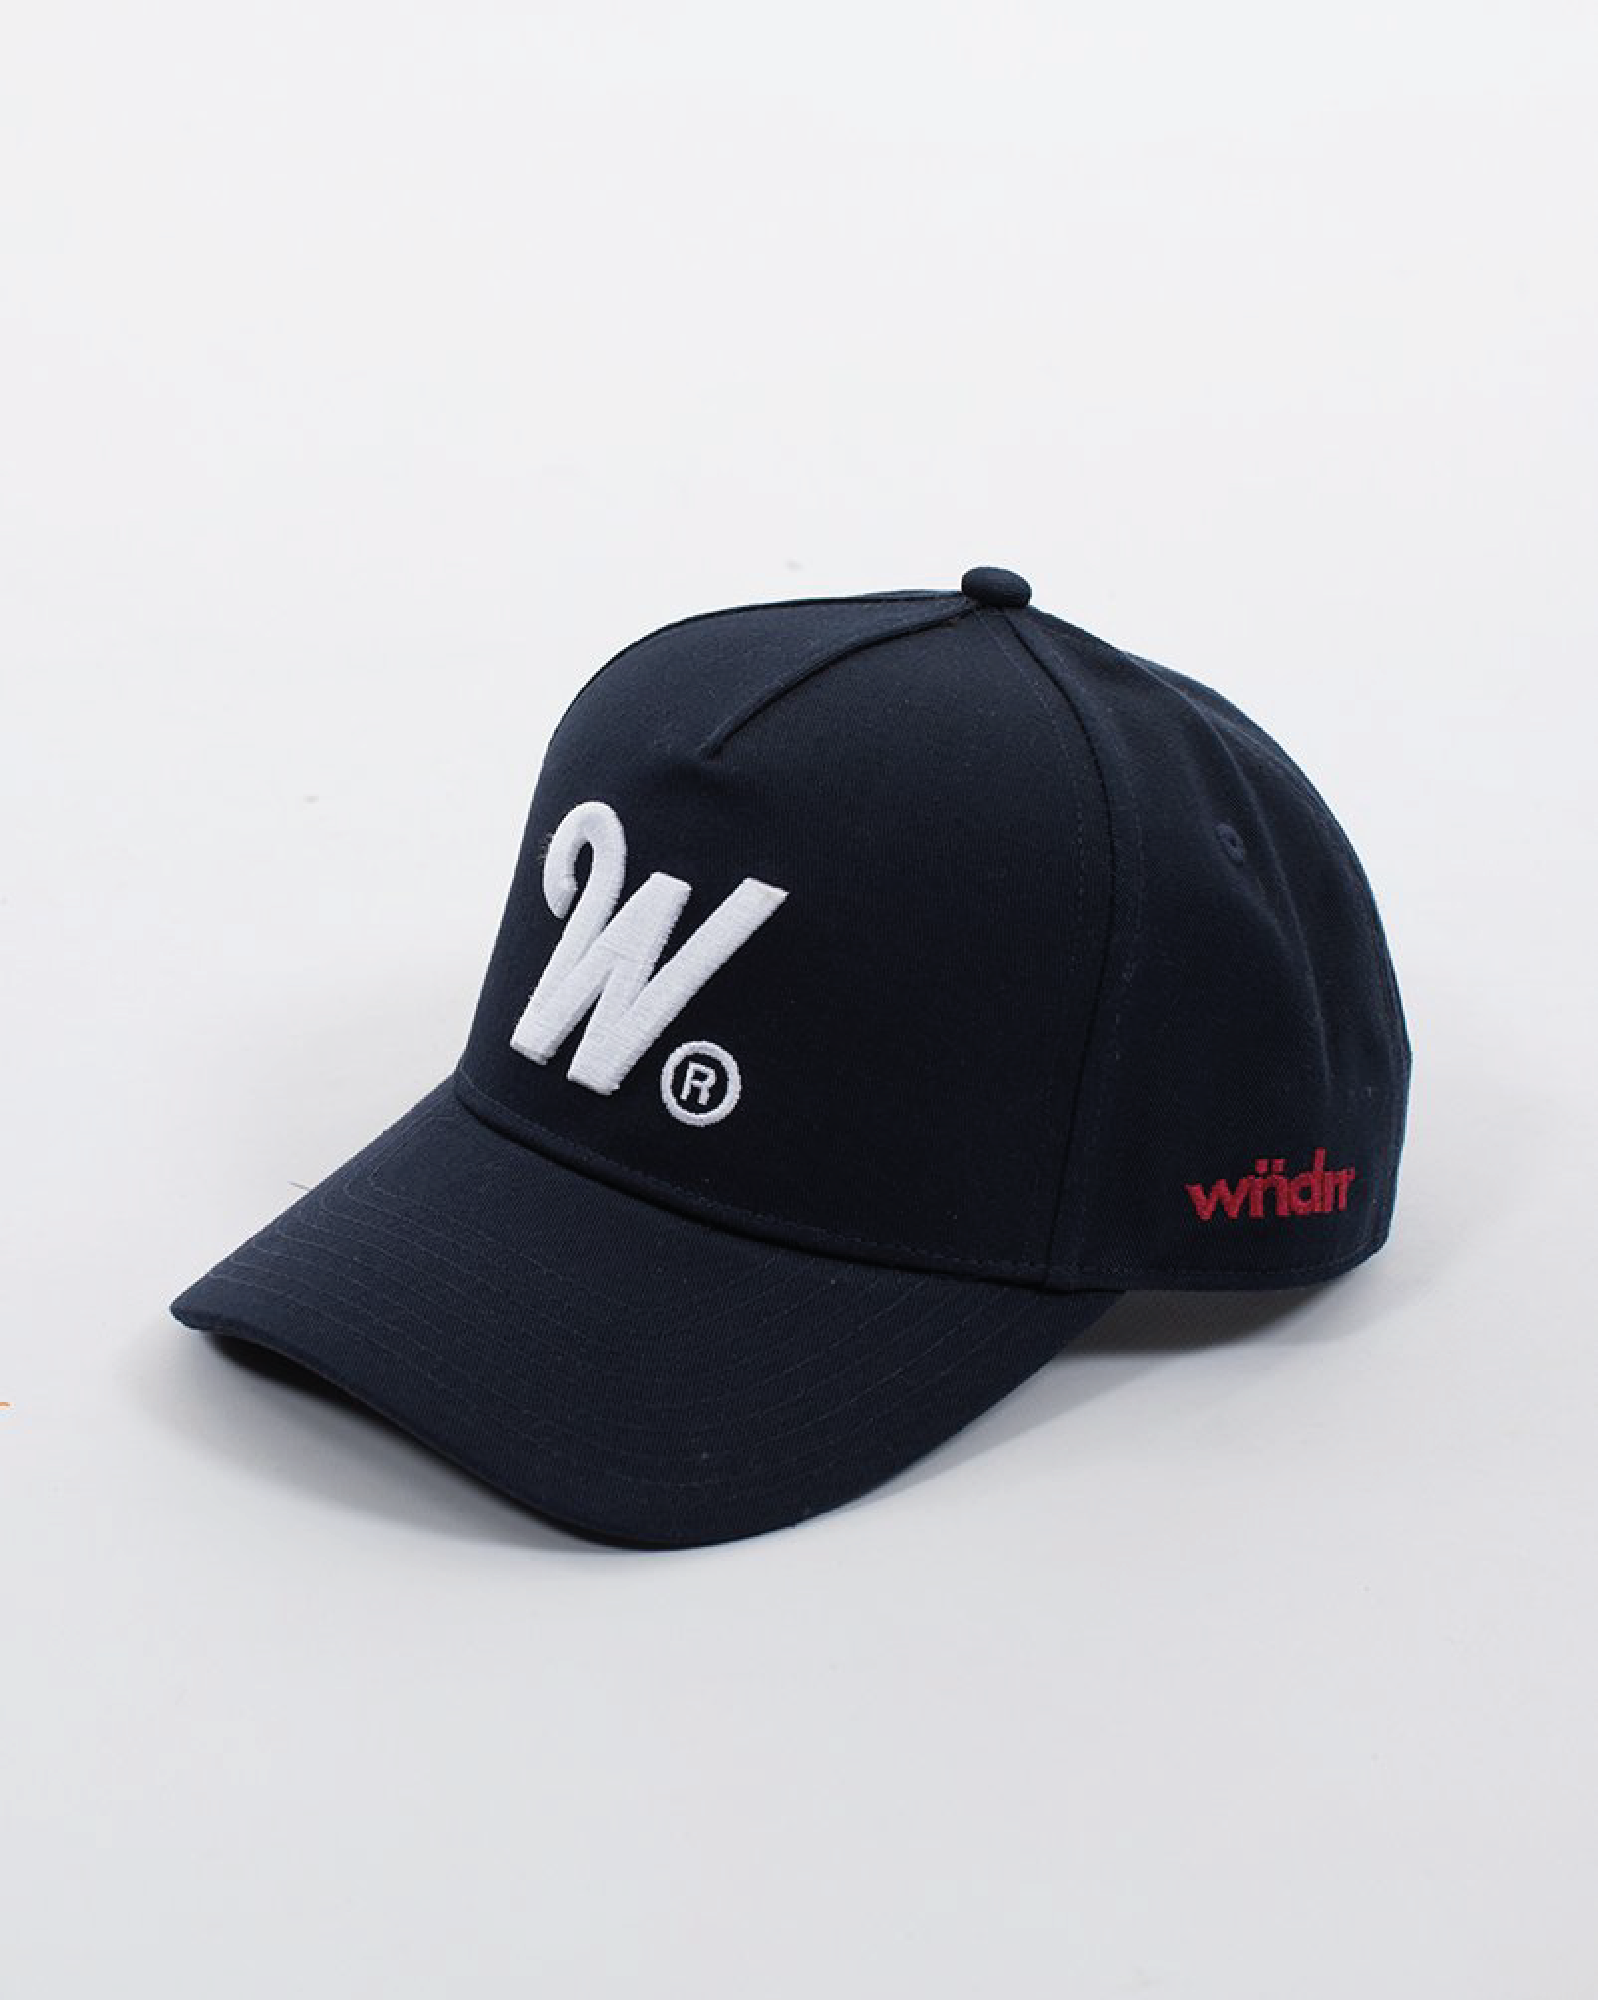 Wndrr Phillips Snapback Cap - Navy/White